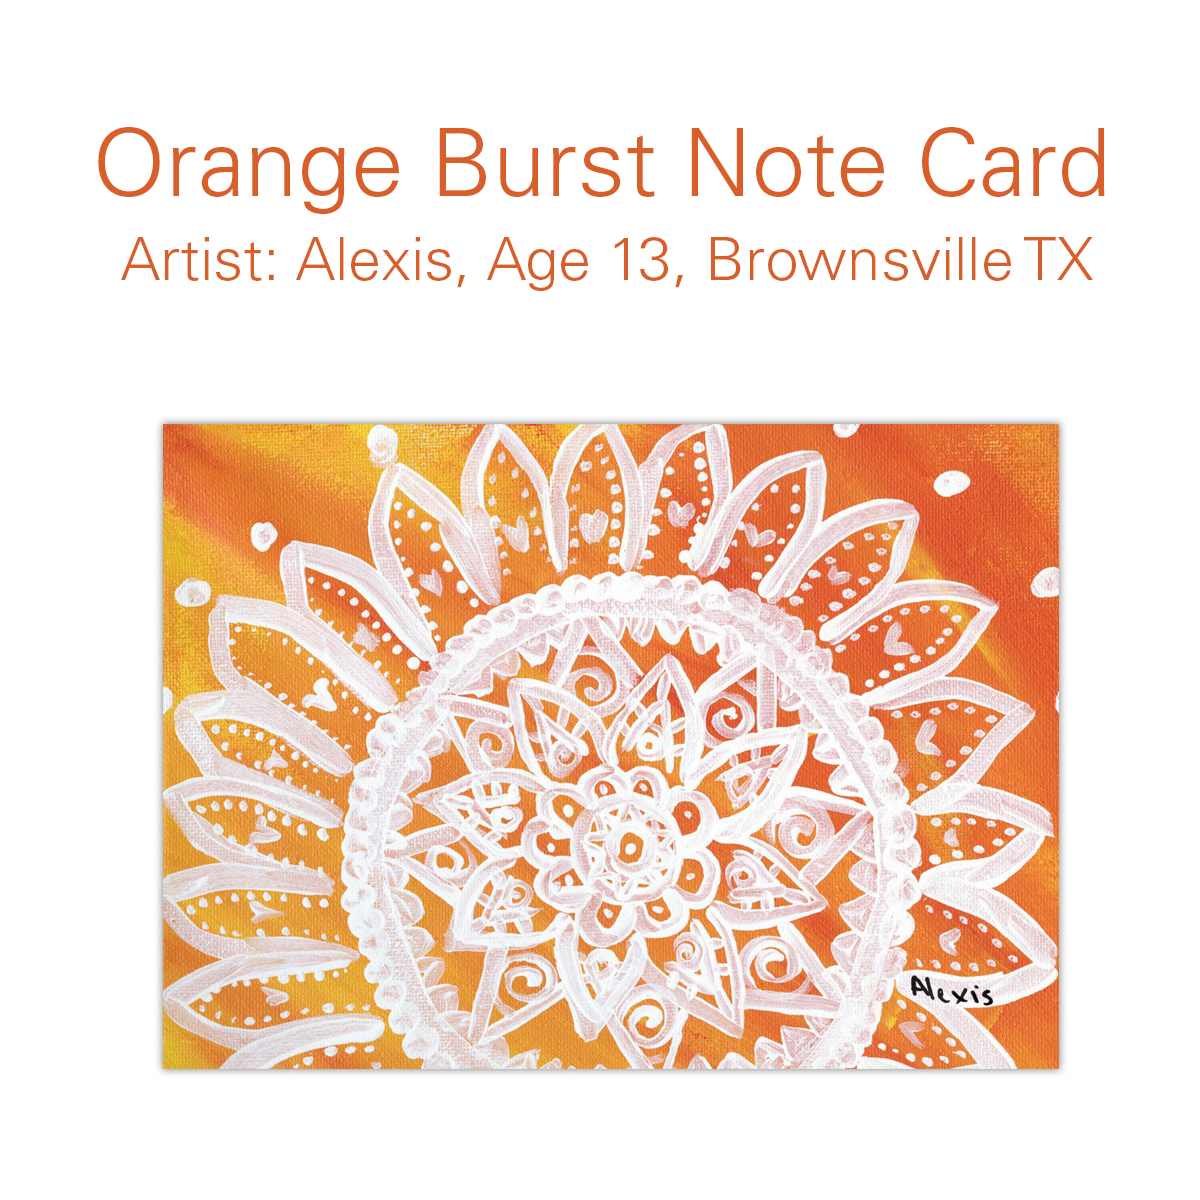 Send a greeting of warmth happiness and energy with our orange send a greeting of warmth happiness and energy with our orange burst note cards designed by alexis age 13 from brownsville the childrens art project kristyandbryce Gallery